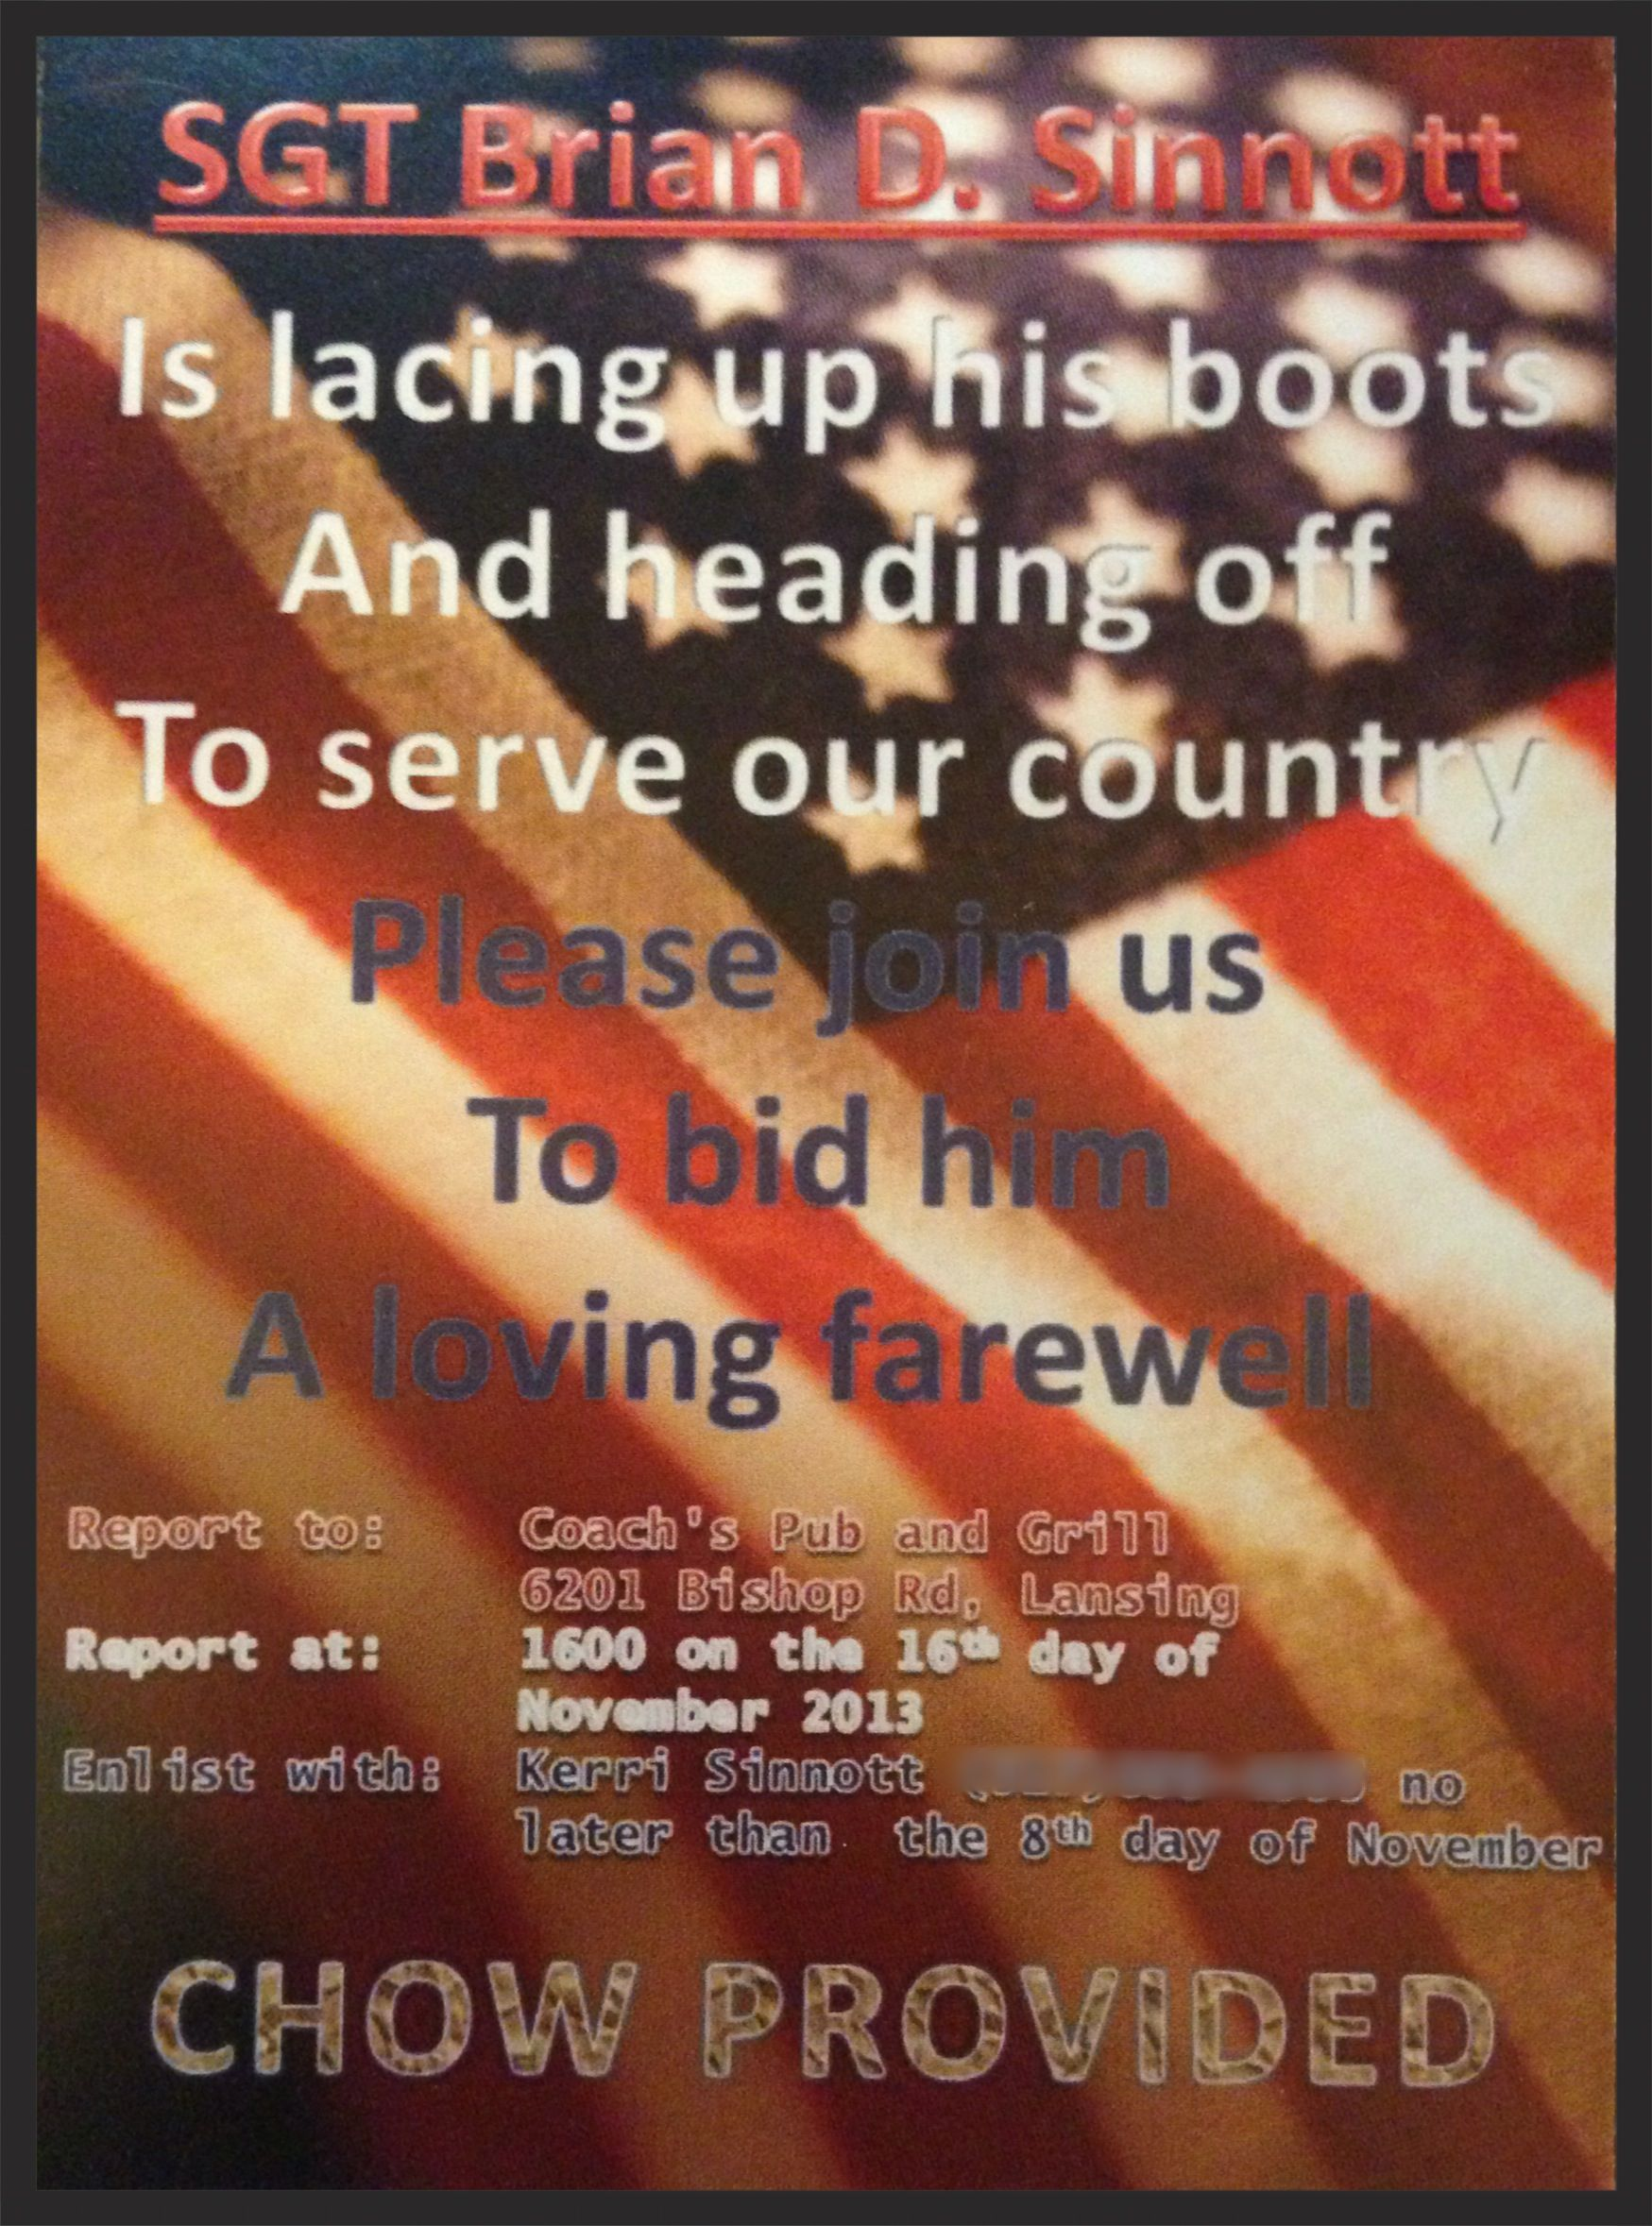 Pre deployment send off party invitation | Projects I have ...